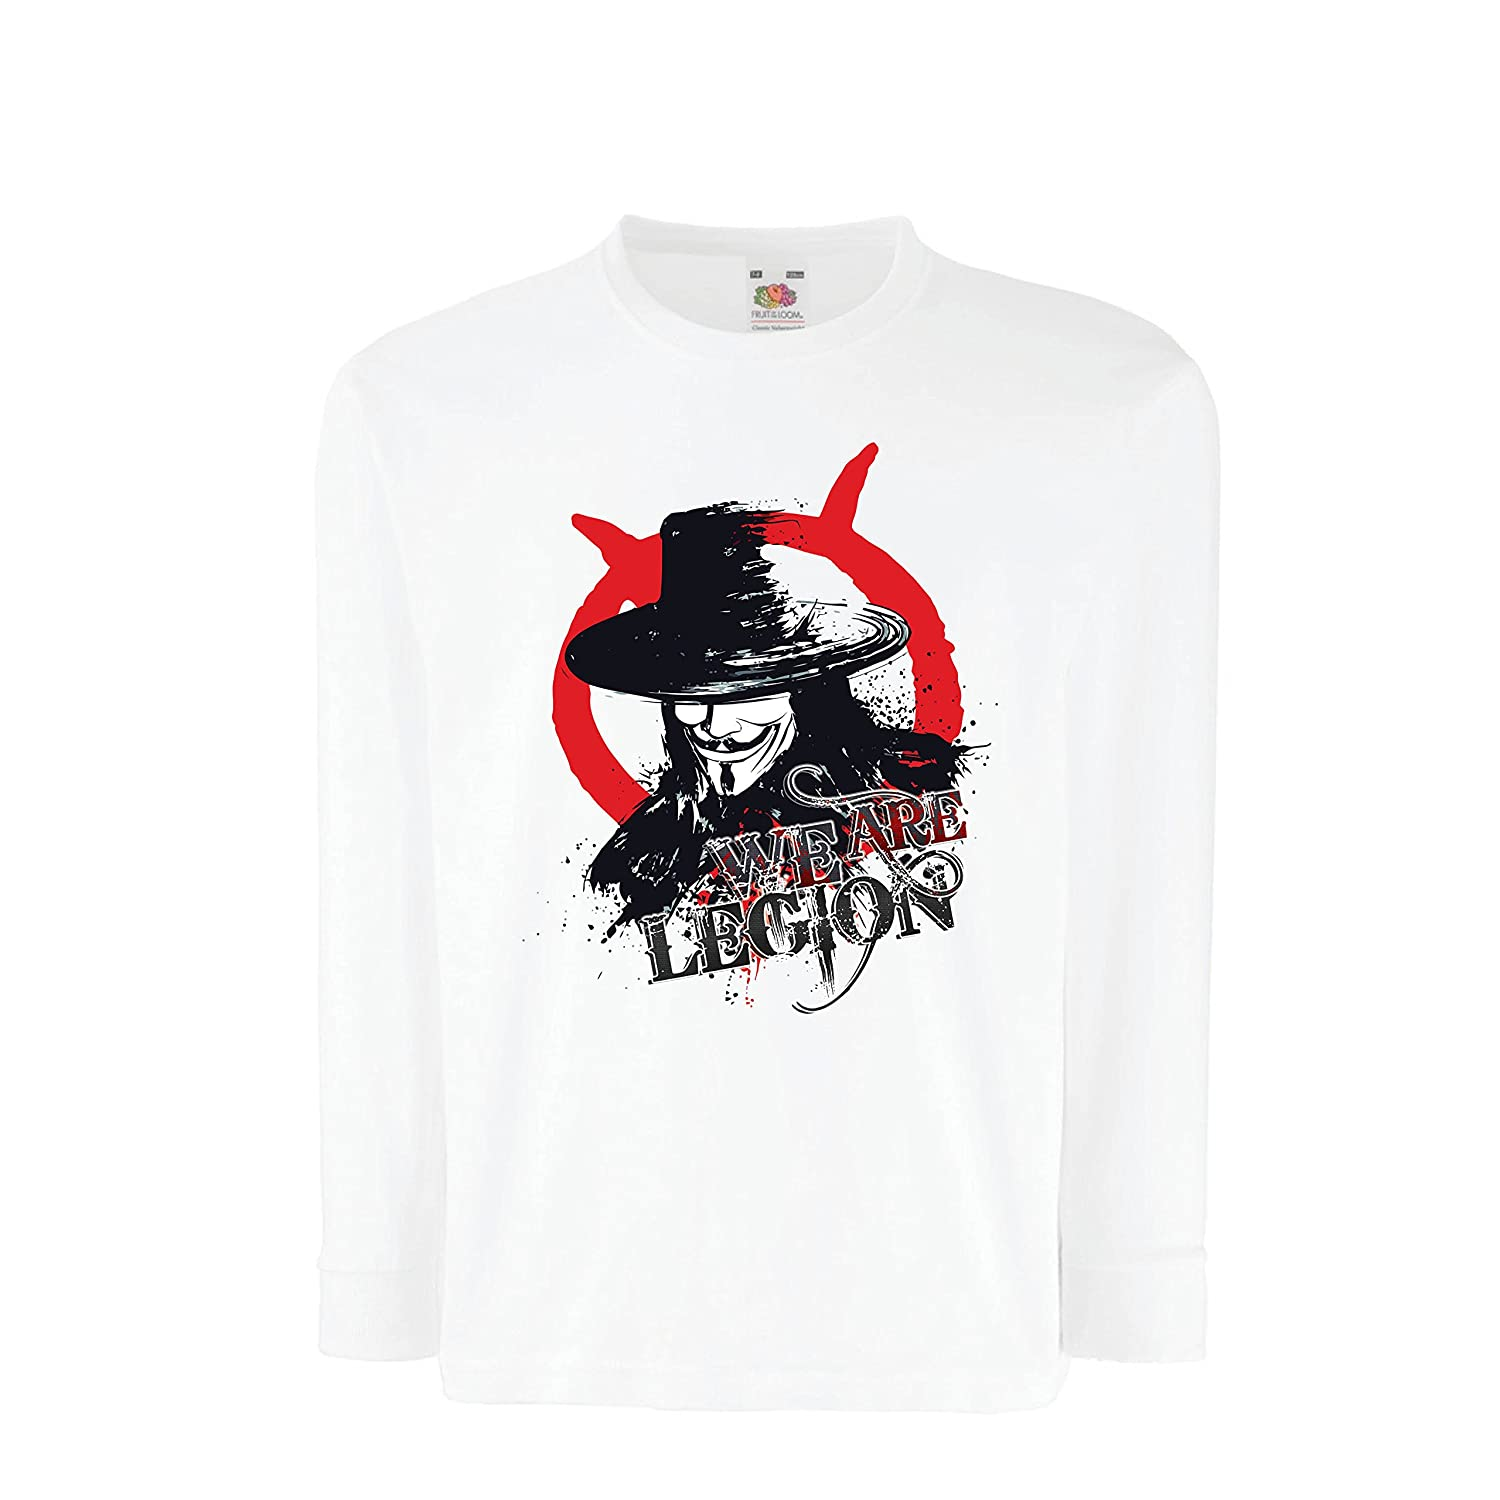 lepni.me Boys/Girls T-Shirt We are Legion - Vendetta - The Anonymous Mask, Hacker VACOM ADVARTAIZING Ltd